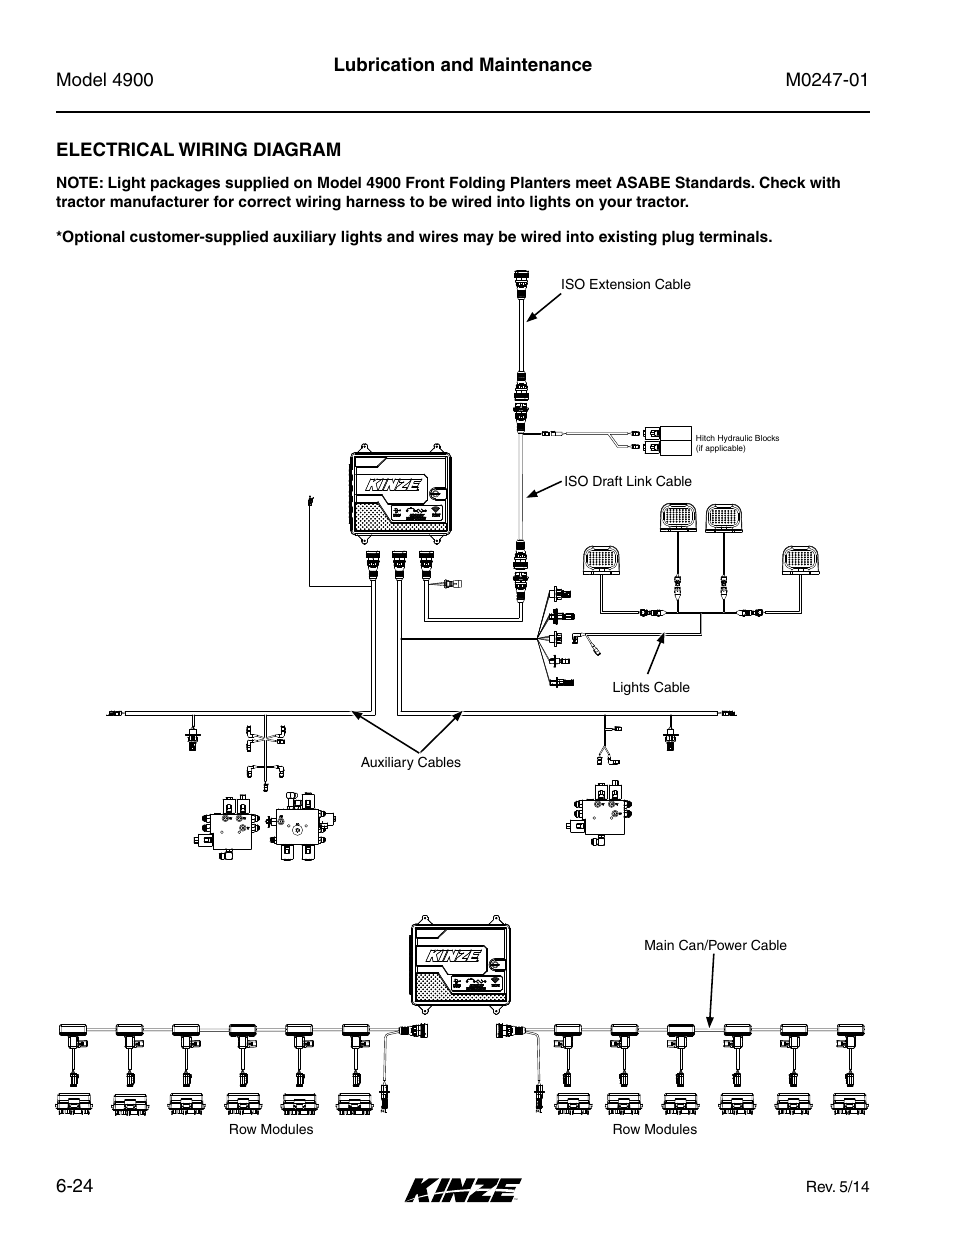 Electrical Wiring Diagram  Electrical Wiring Diagram